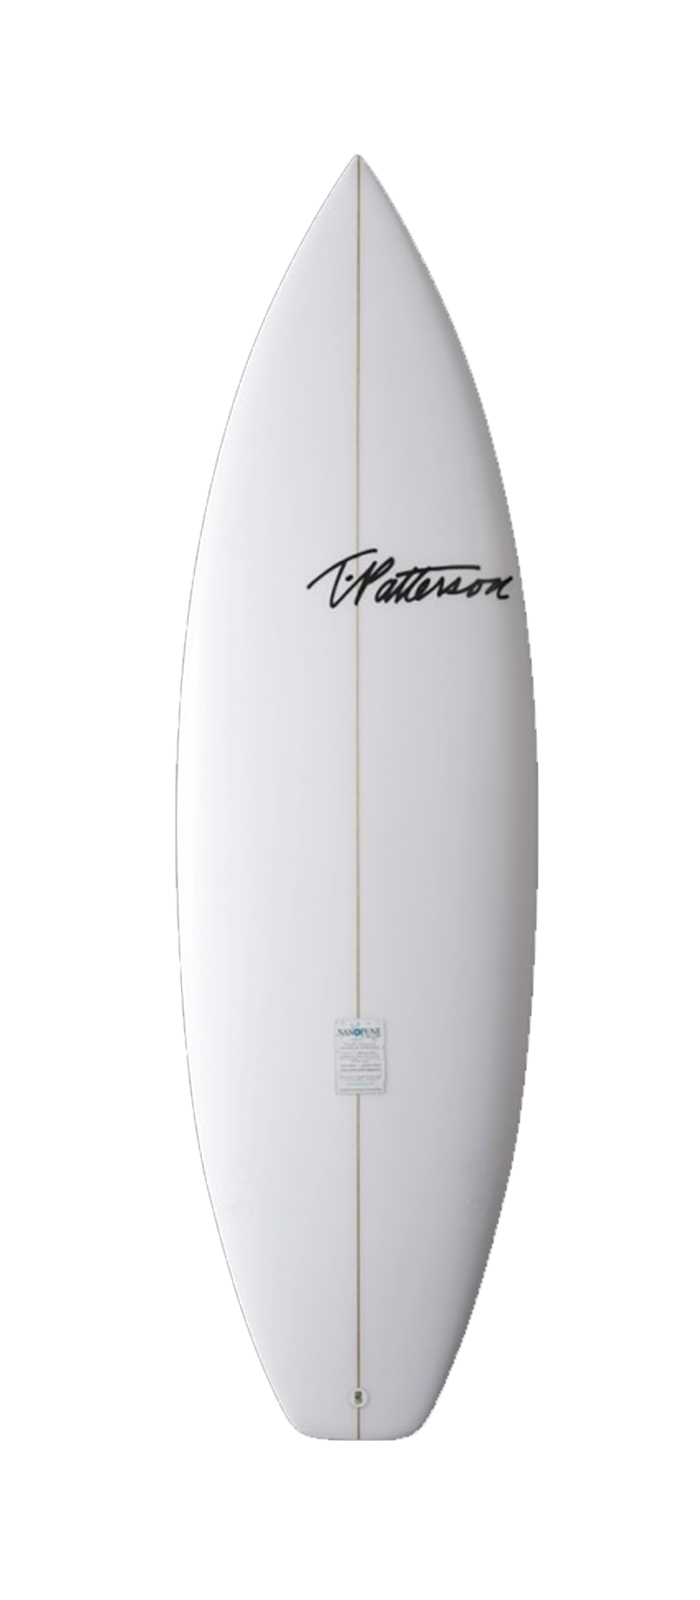 Speed Drive surfboard model